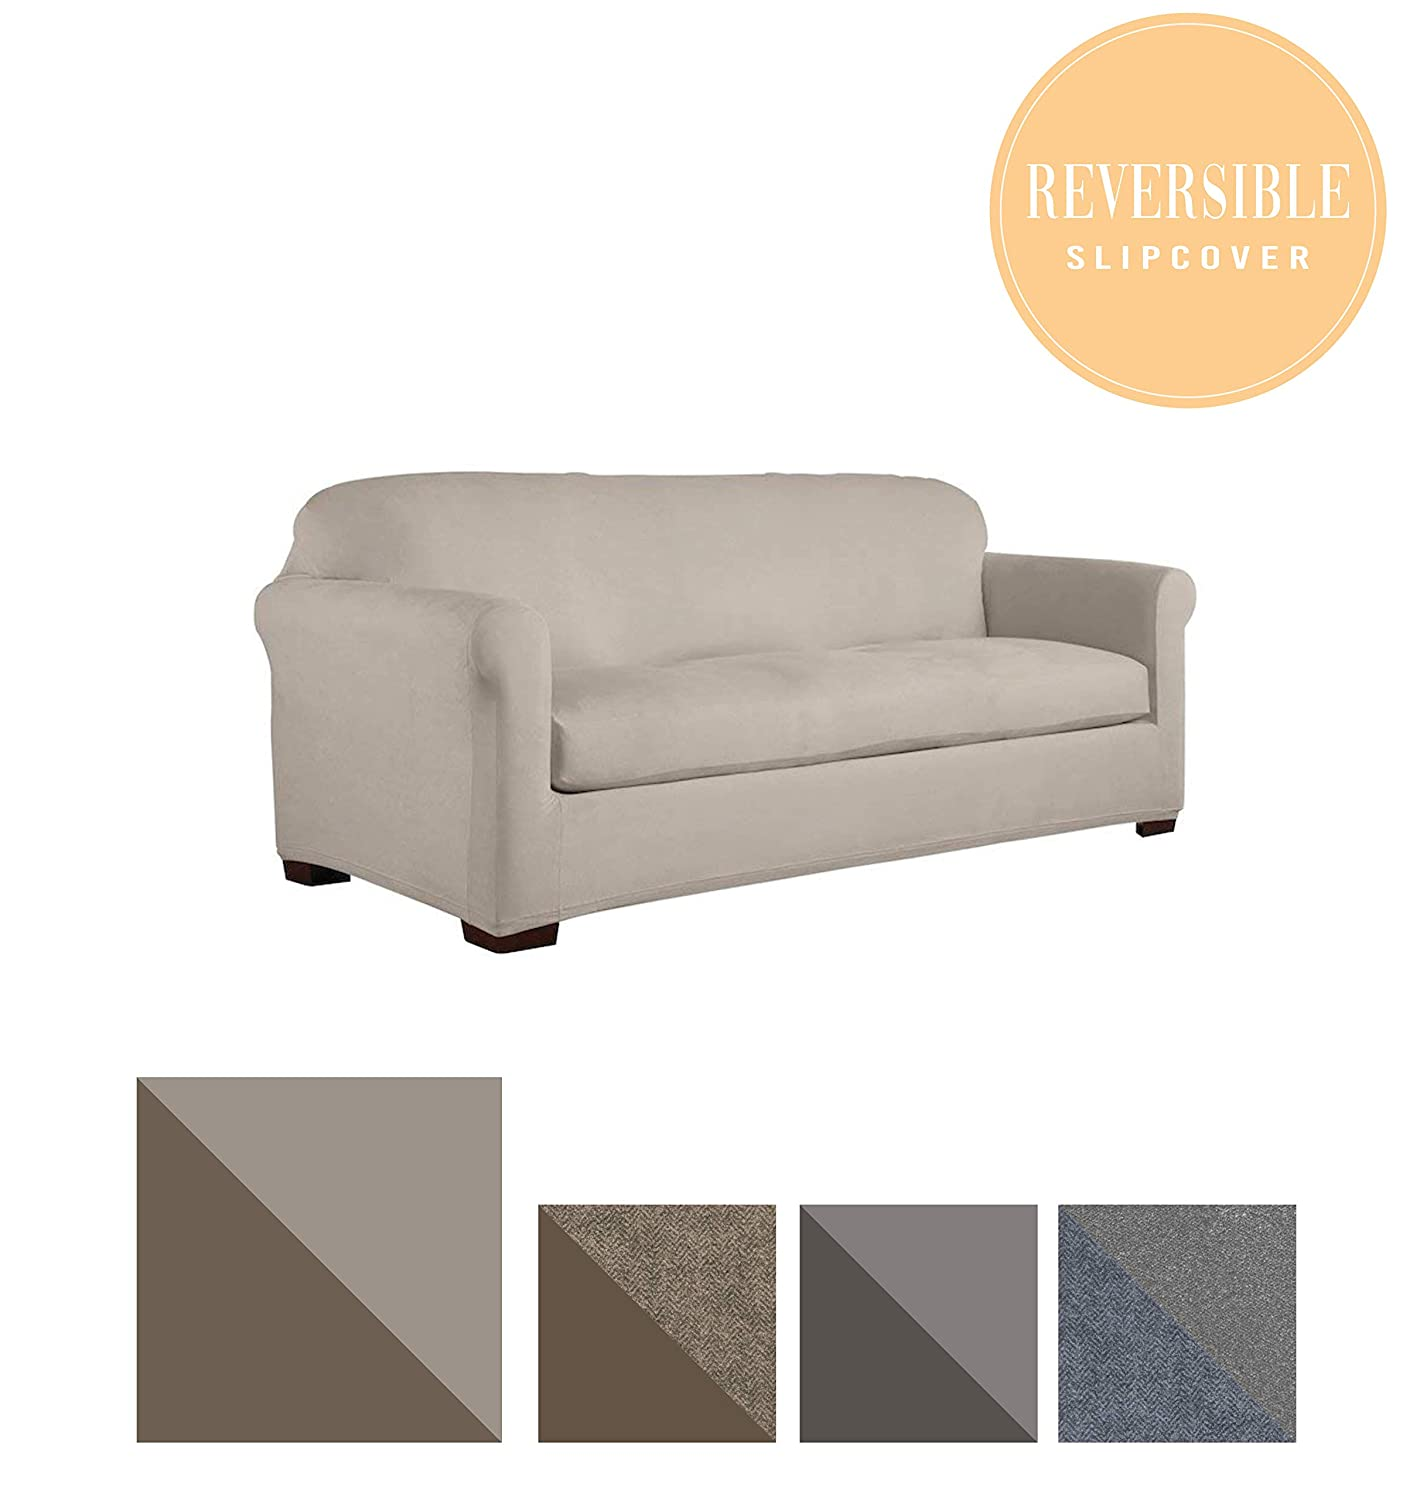 Slip-Resistant Form Fitting Furniture Slipcover for Sofa with Detachable Cushions Perfect Fit Serta Reversible Stretch Suede Steel Gray Herringbone//Gray Solid